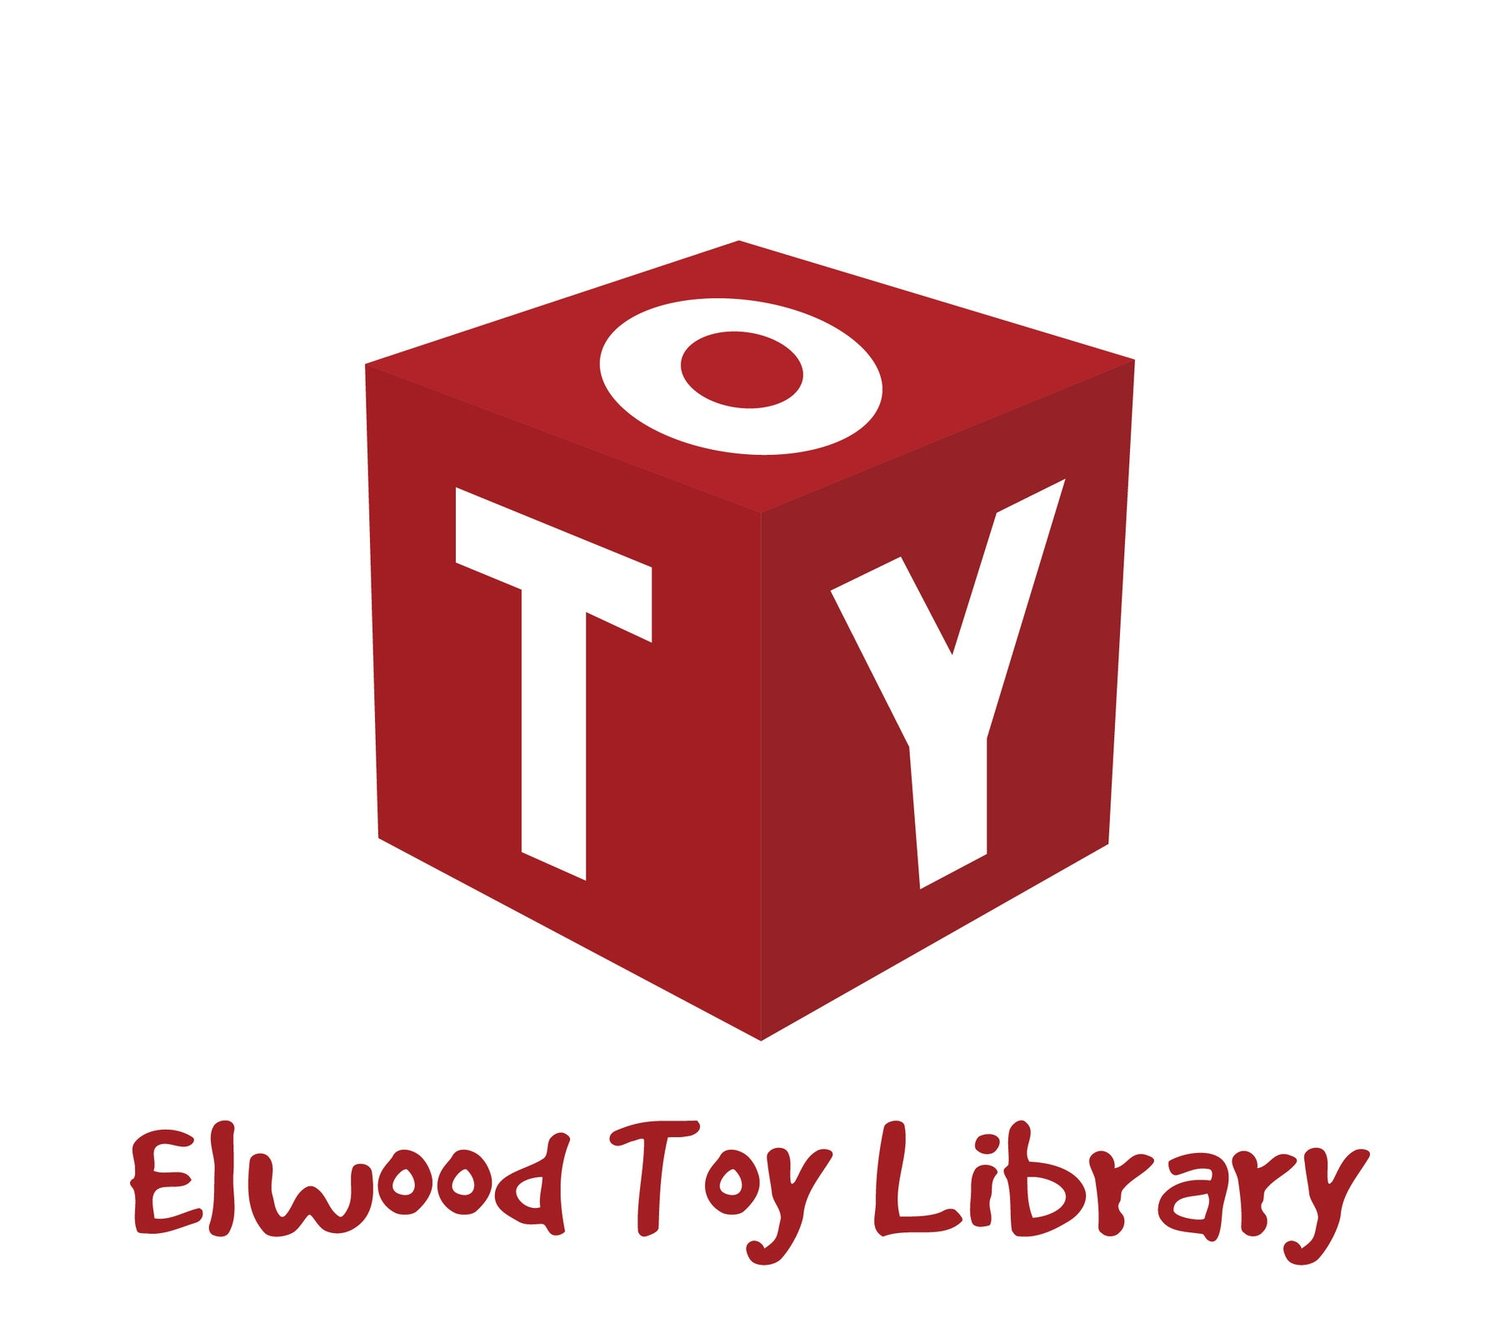 Elwood Toy Library